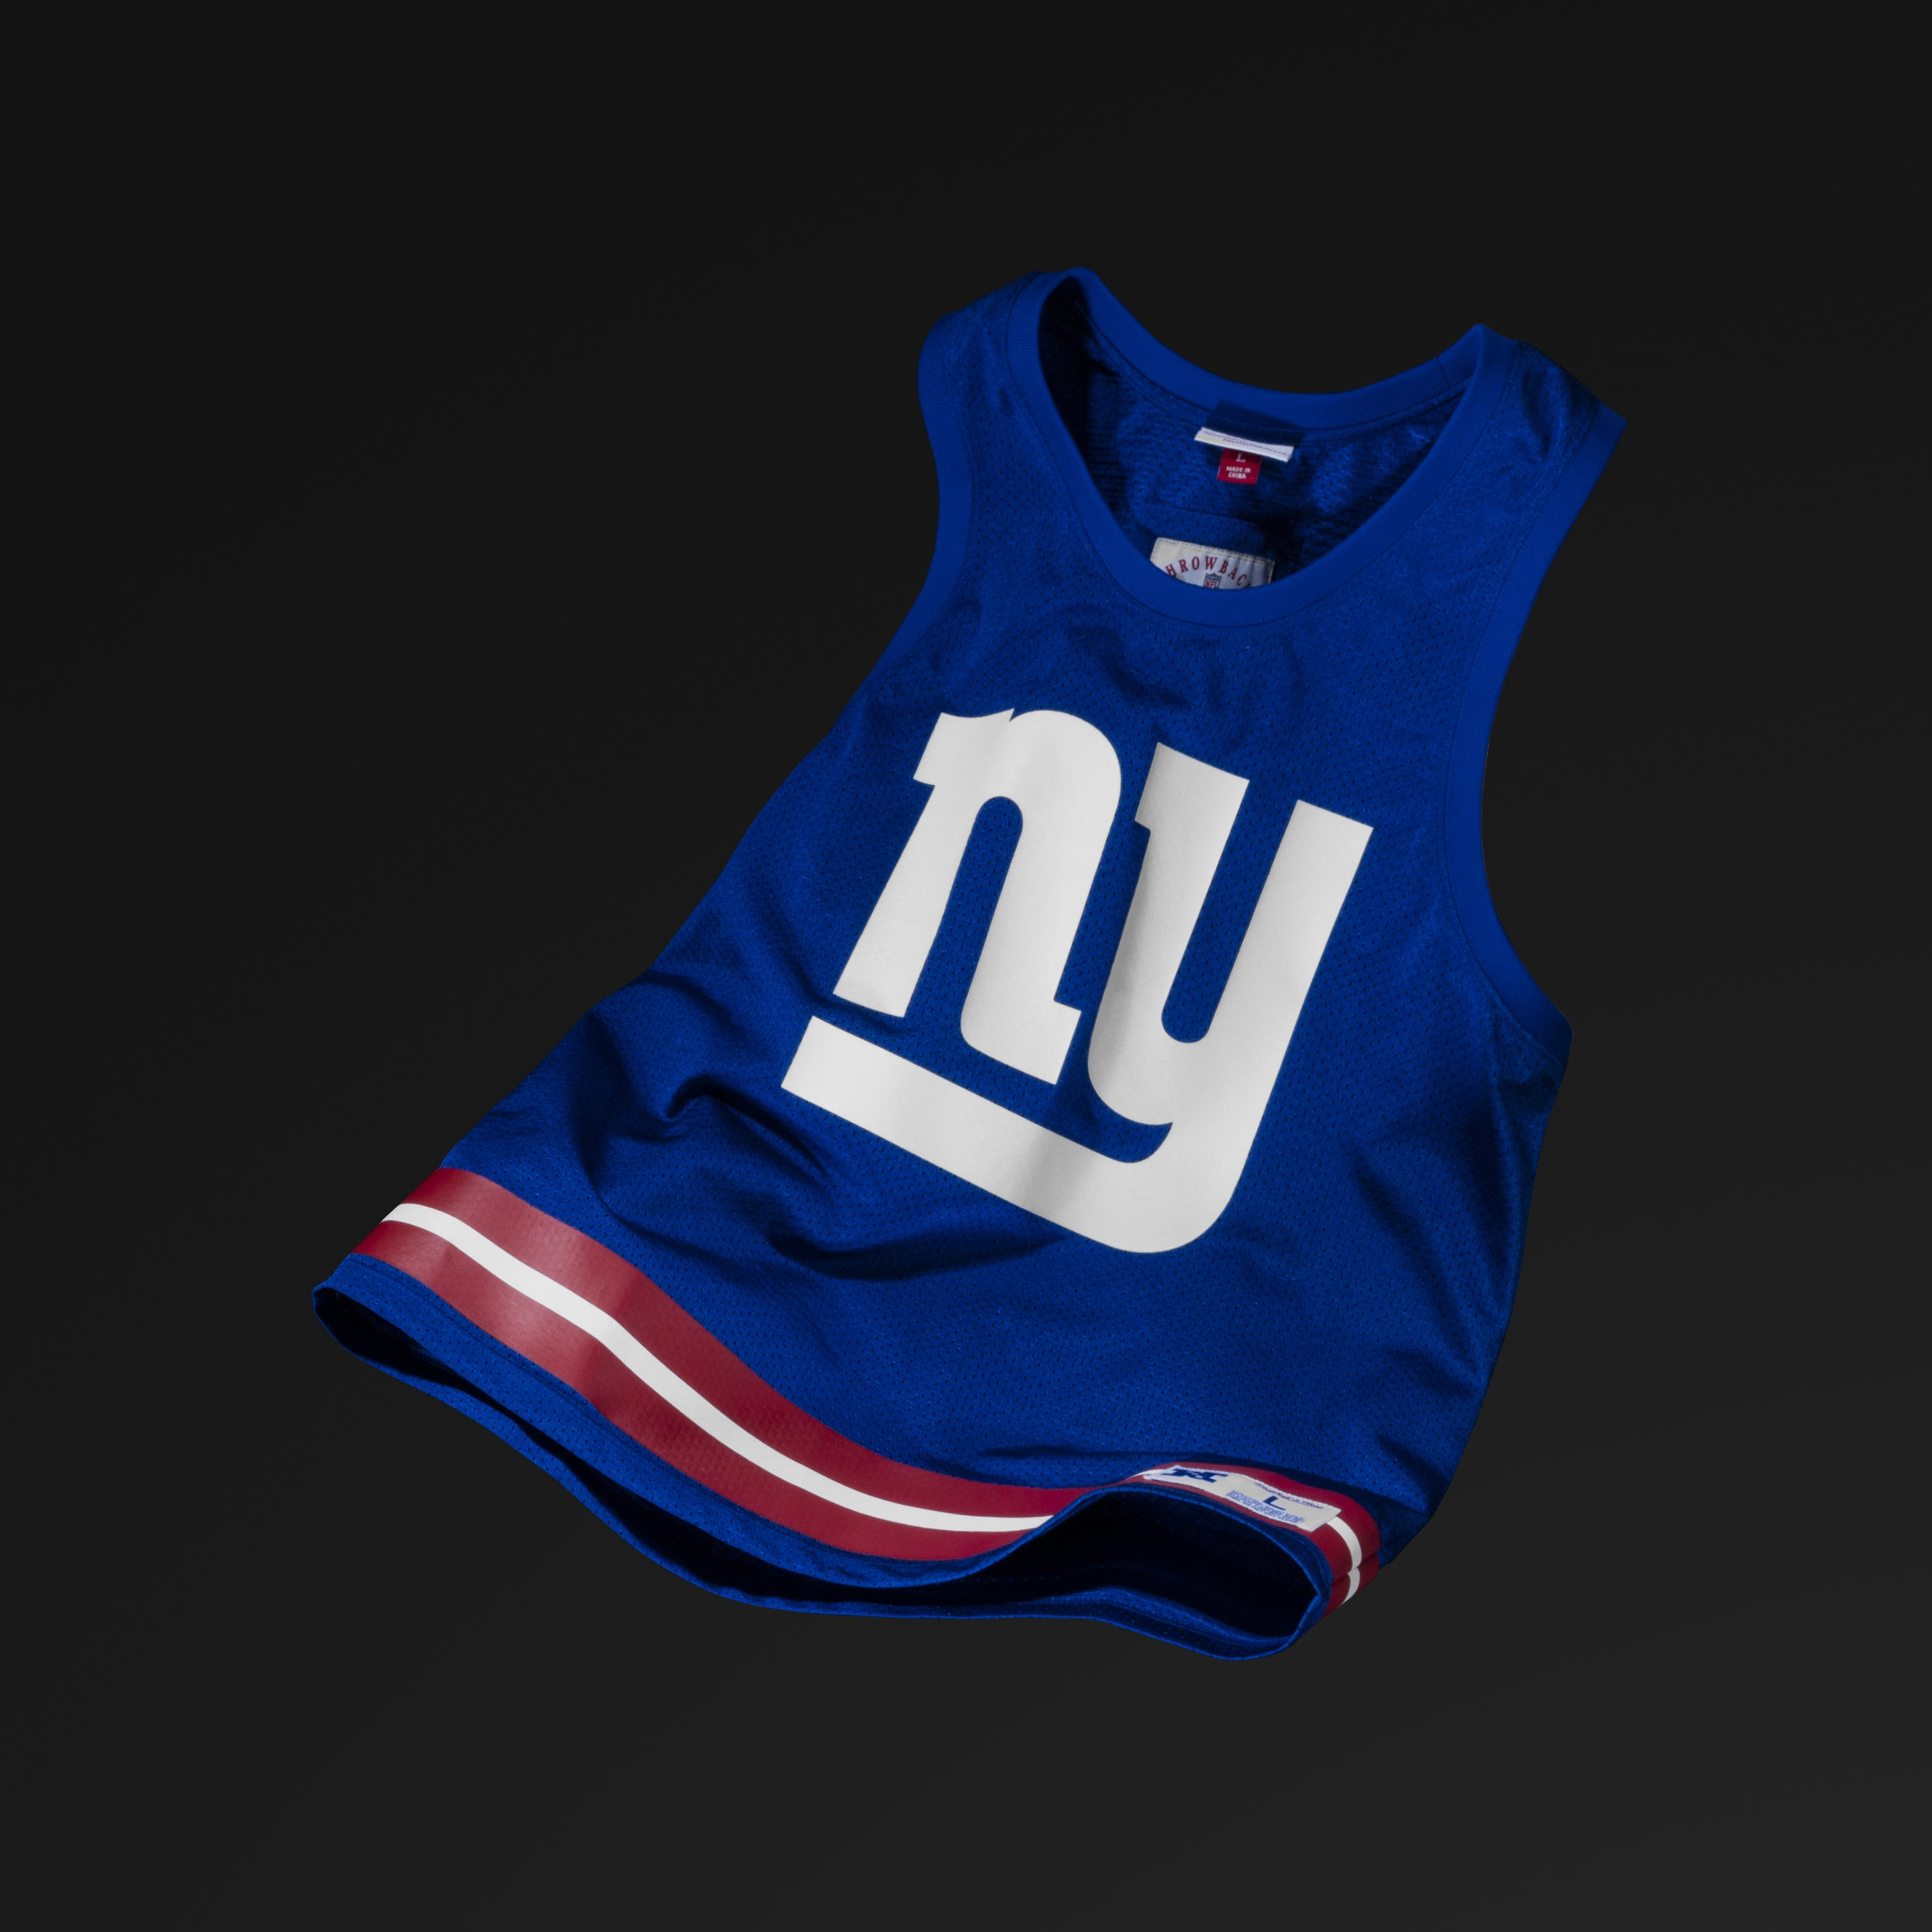 Mitchell & Ness Football Jerseys - Giants - CNCPTS